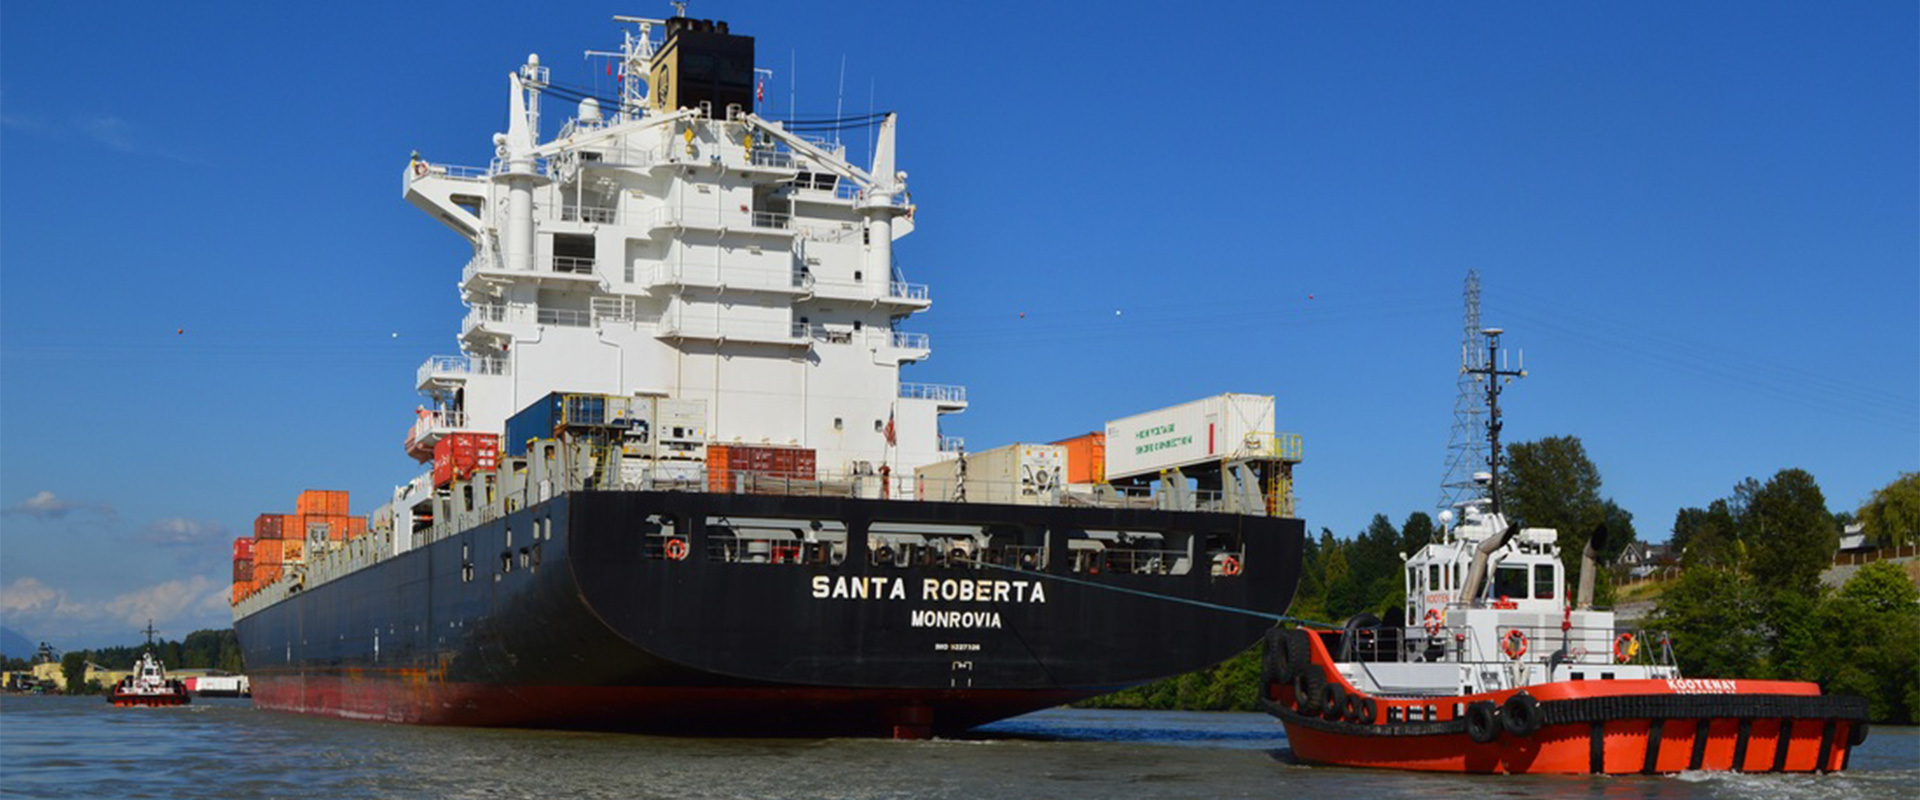 OCEAN GROUP ACQUIRES SAMSON TUGBOATS IN THE VANCOUVER AREA